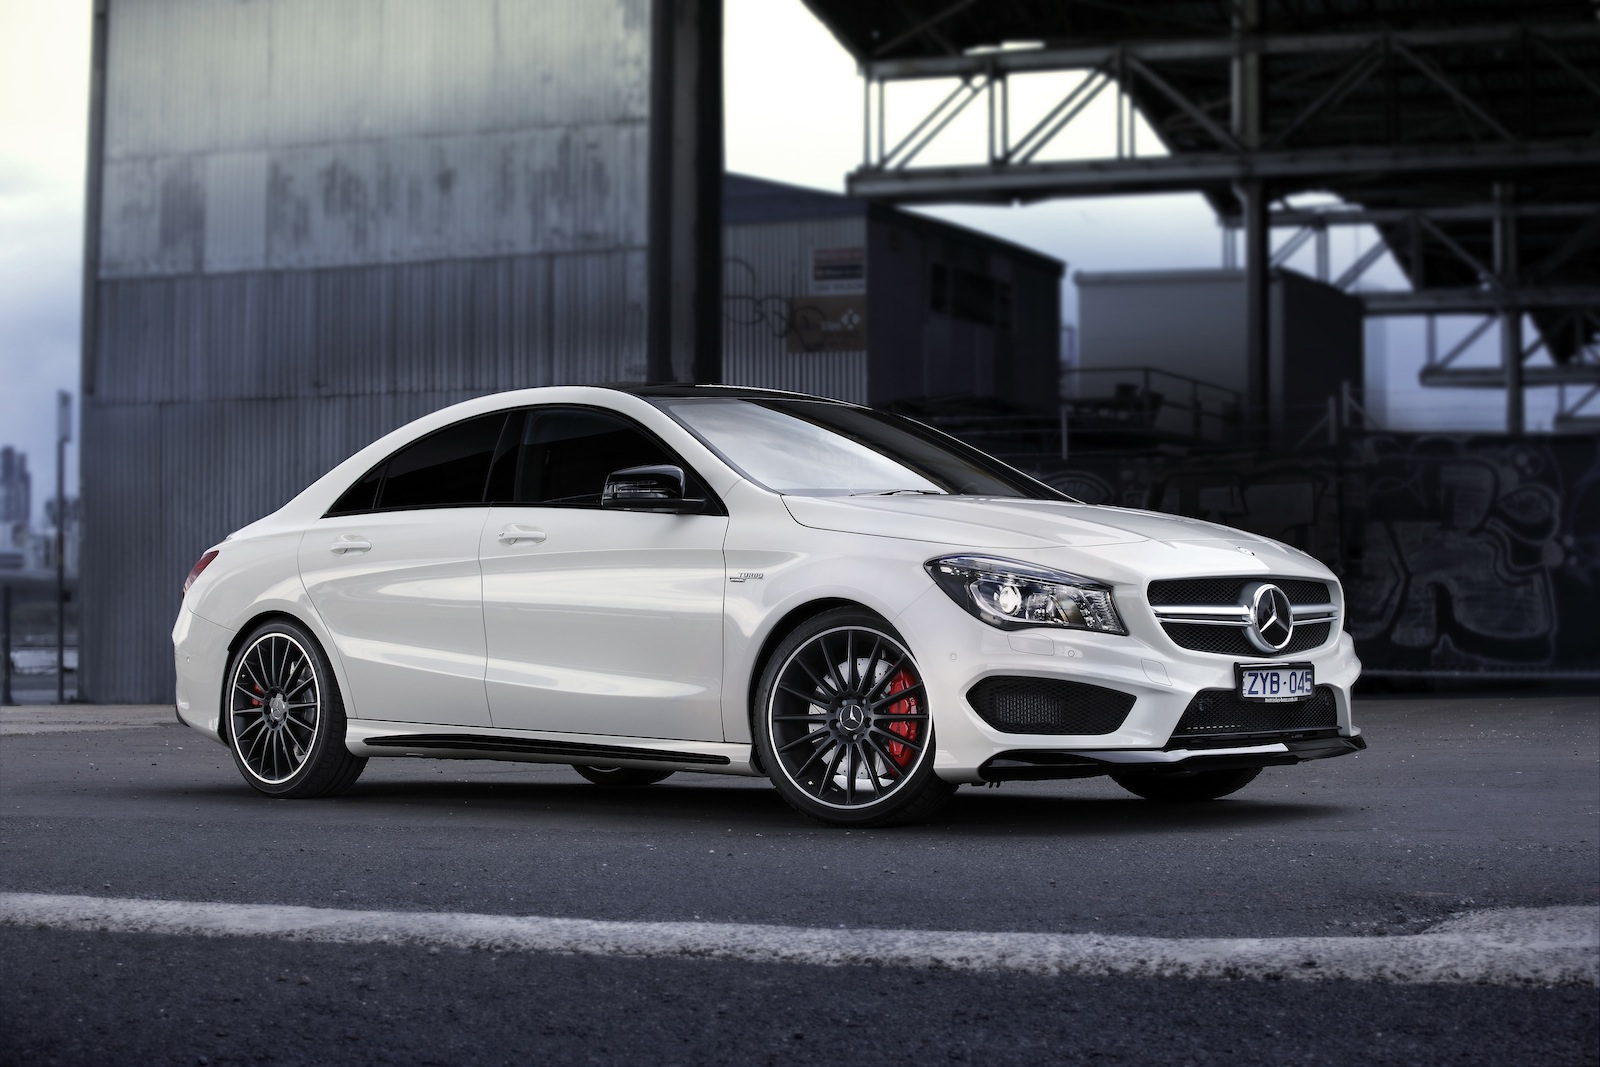 2014 mercedes benz cla45 amg auto hd desktop wallpaper 03 apps. Cars Review. Best American Auto & Cars Review